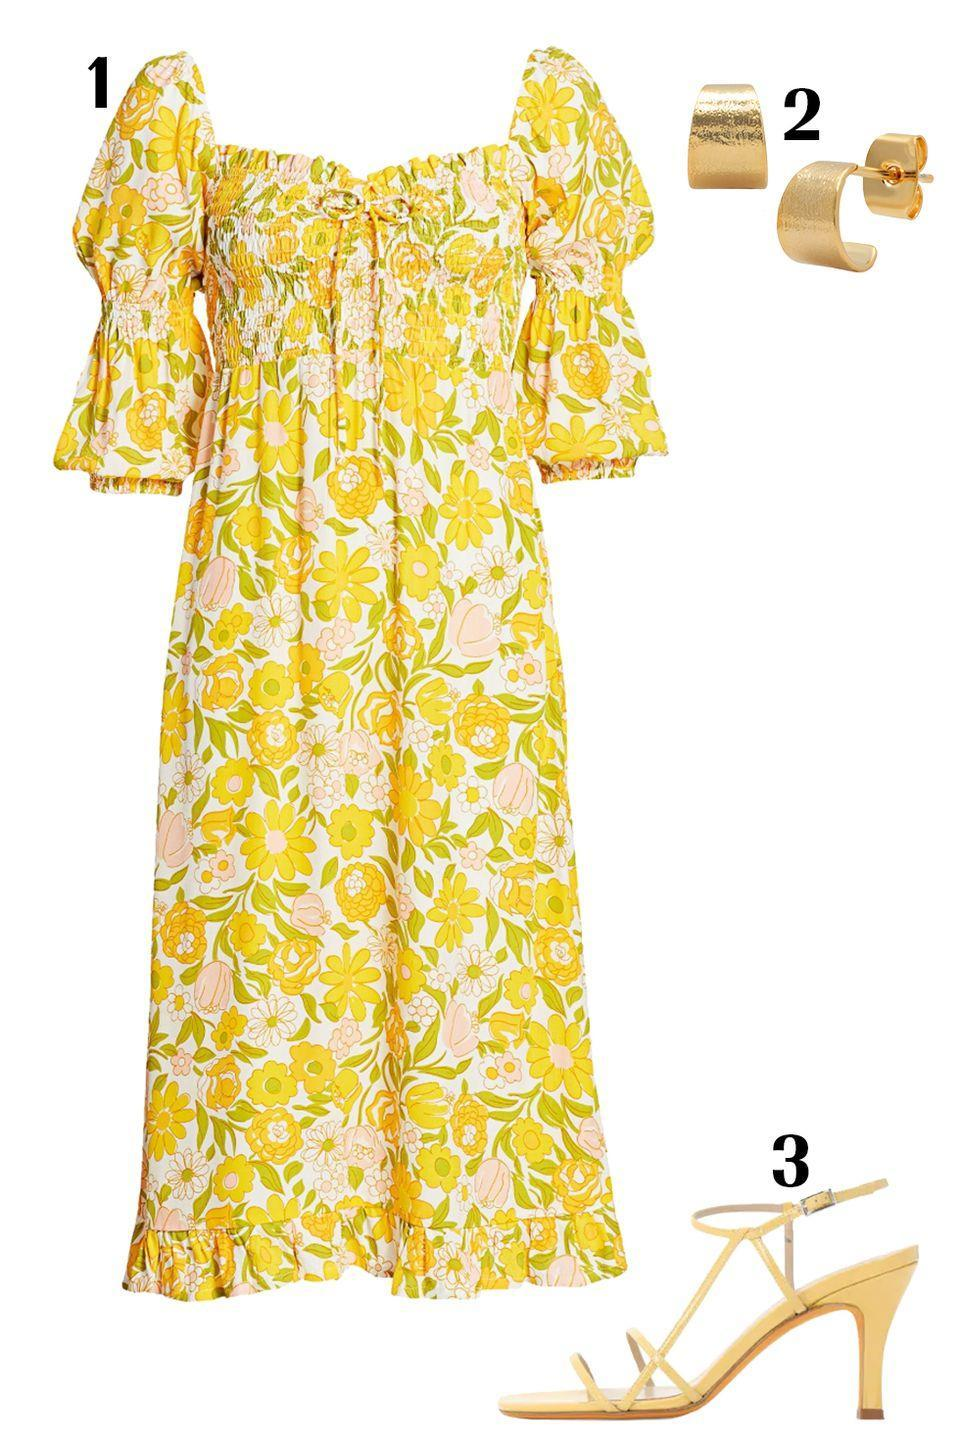 "<p>Florals: the ultimate anti-depressant. Pair this ulta-girly floral dress with small hoops and matching heels for a look that exudes joy.</p><p>1) <a href=""https://www.saksfifthavenue.com/faithfull-the-brand-nora-floral-midi-dress/product/0400011940380?ranMID=13816&ranEAID=J84DHJLQkR4&ranSiteID=J84DHJLQkR4-egobOI0ZBi87rmLlqUmp8w&site_refer=AFF001&mid=13816&siteID=J84DHJLQkR4-egobOI0ZBi87rmLlqUmp8w&LSoid=684233&LSlinkid=10&LScreativeid=1"" rel=""nofollow noopener"" target=""_blank"" data-ylk=""slk:Faithfull the Brand dress"" class=""link rapid-noclick-resp"">Faithfull the Brand dress</a>, $113 2) <a href=""https://www.taijewelry.com/collections/50-and-under/products/cuff-hoop"" rel=""nofollow noopener"" target=""_blank"" data-ylk=""slk:Tai hoops"" class=""link rapid-noclick-resp"">Tai hoops</a>, $40 3) <a href=""https://www.luisaviaroma.com/en-us/p/maryam-nassir-zadeh/women/71I-XS1003?ColorId=MzE4IFNBSEFSQQ2&lvrid=_p_dCD8_gw&AID=10617612&PID=2178999&SID=4491232206&utm_source=CommissionJunction&utm_medium=affiliation&utm_content=2178999&utm_campaign=1909792&CJEVENT=b824456a7e6c11ea802c010f0a24060e&click_id=b824456a7e6c11ea802c010f0a24060e"" rel=""nofollow noopener"" target=""_blank"" data-ylk=""slk:Maryam Nassir Zadeh heels"" class=""link rapid-noclick-resp"">Maryam Nassir Zadeh heels</a>, $527</p><p><em><em>For more stories like this, including celebrity news, beauty and fashion advice, savvy political commentary, and fascinating features, sign up for the </em>Marie Claire<em> newsletter.</em></em></p><p><a href=""https://preferences.hearstmags.com/brands/MAR/subscribe.aspx?authId=F0CC0C27-80DA-4734-ABDF-E4115B84A56B&maj=WNL&min=ARTICLES"" rel=""nofollow noopener"" target=""_blank"" data-ylk=""slk:SUBSCRIBE HERE"" class=""link rapid-noclick-resp"">SUBSCRIBE HERE</a></p>"